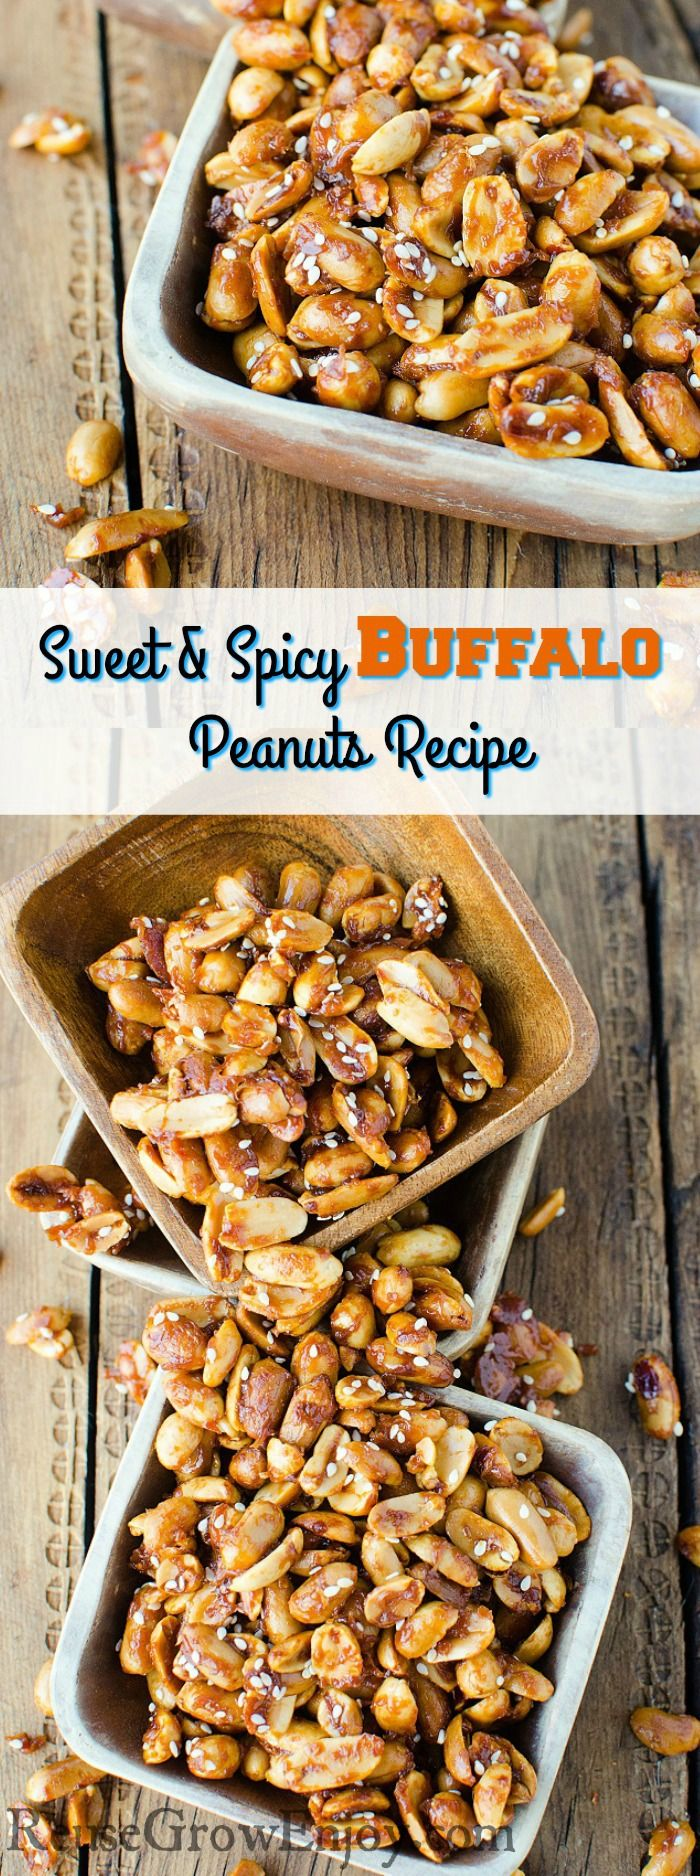 If you are in the need for new snack idea, this is sure to be a hit! This recipe for Sweet And Spicy Buffalo Peanuts has just the right touch of sweet and spicy that everyone loves. Great recipe for game day or any type of party.